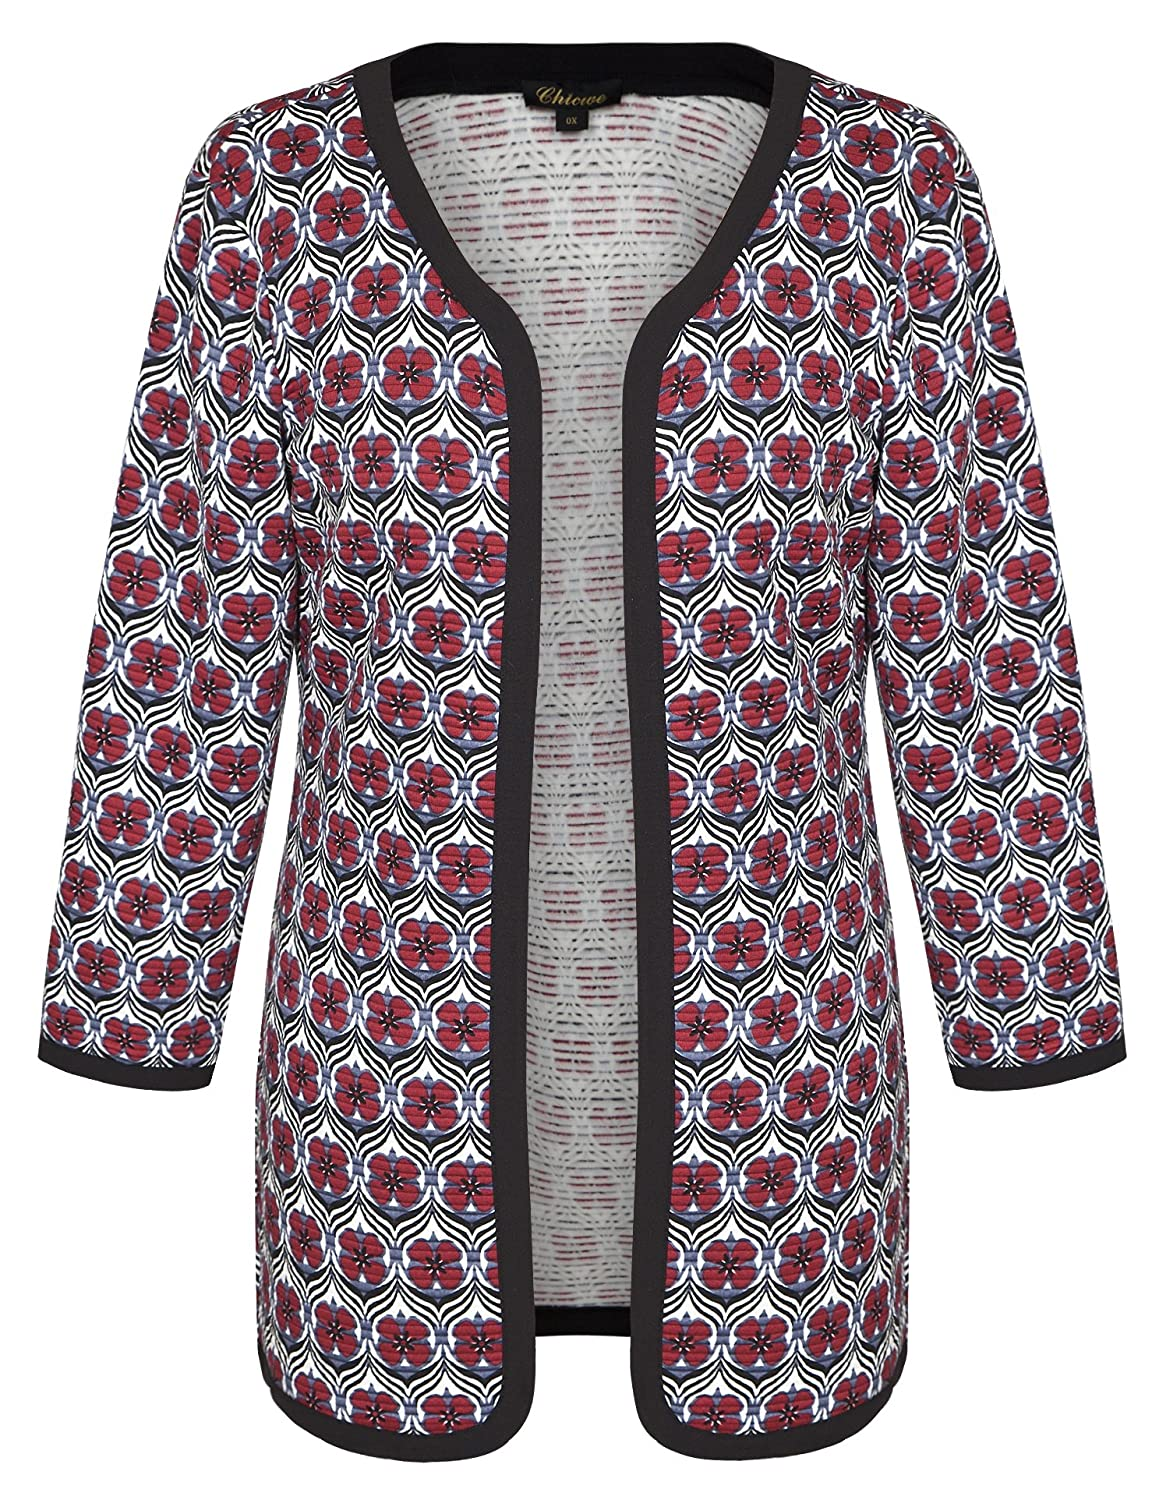 Chicwe Women's Floral Quilted Light Weight Plus Size Cardigan Jacket 1X-4X C17C126